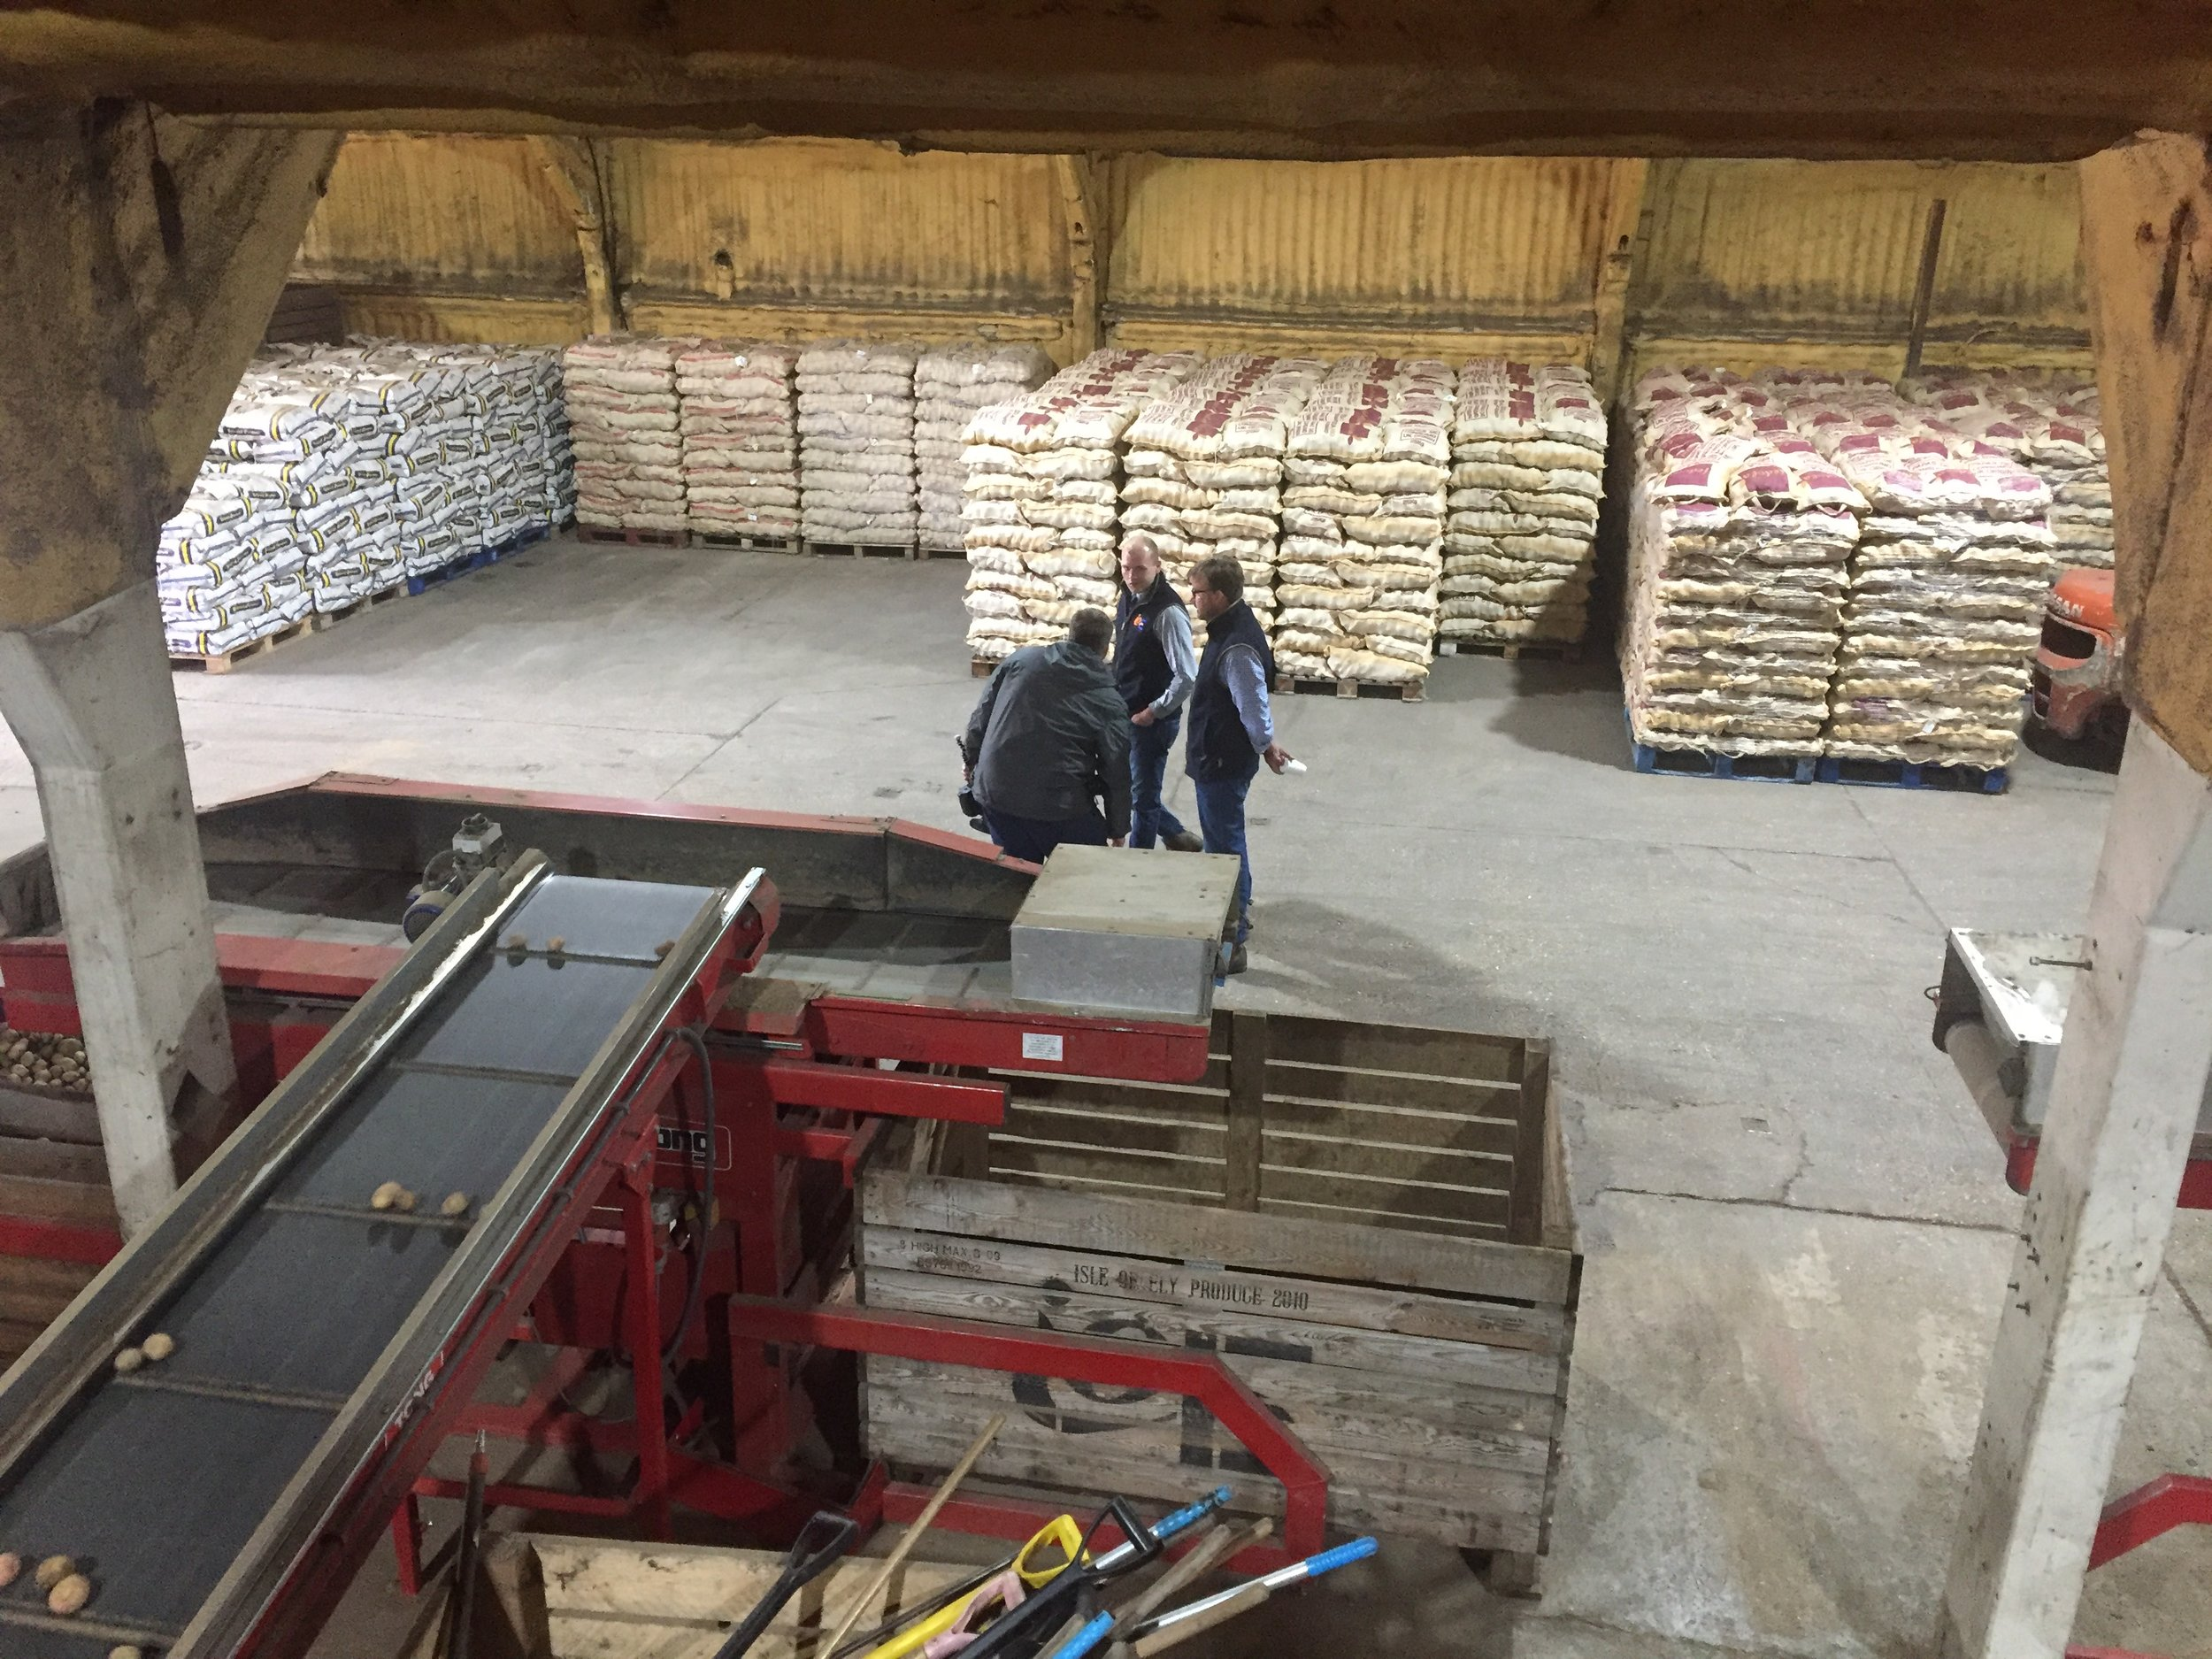 Potatoes bagged and stored on pallets, ready for shipping out to the fish and chip shops of our nation!